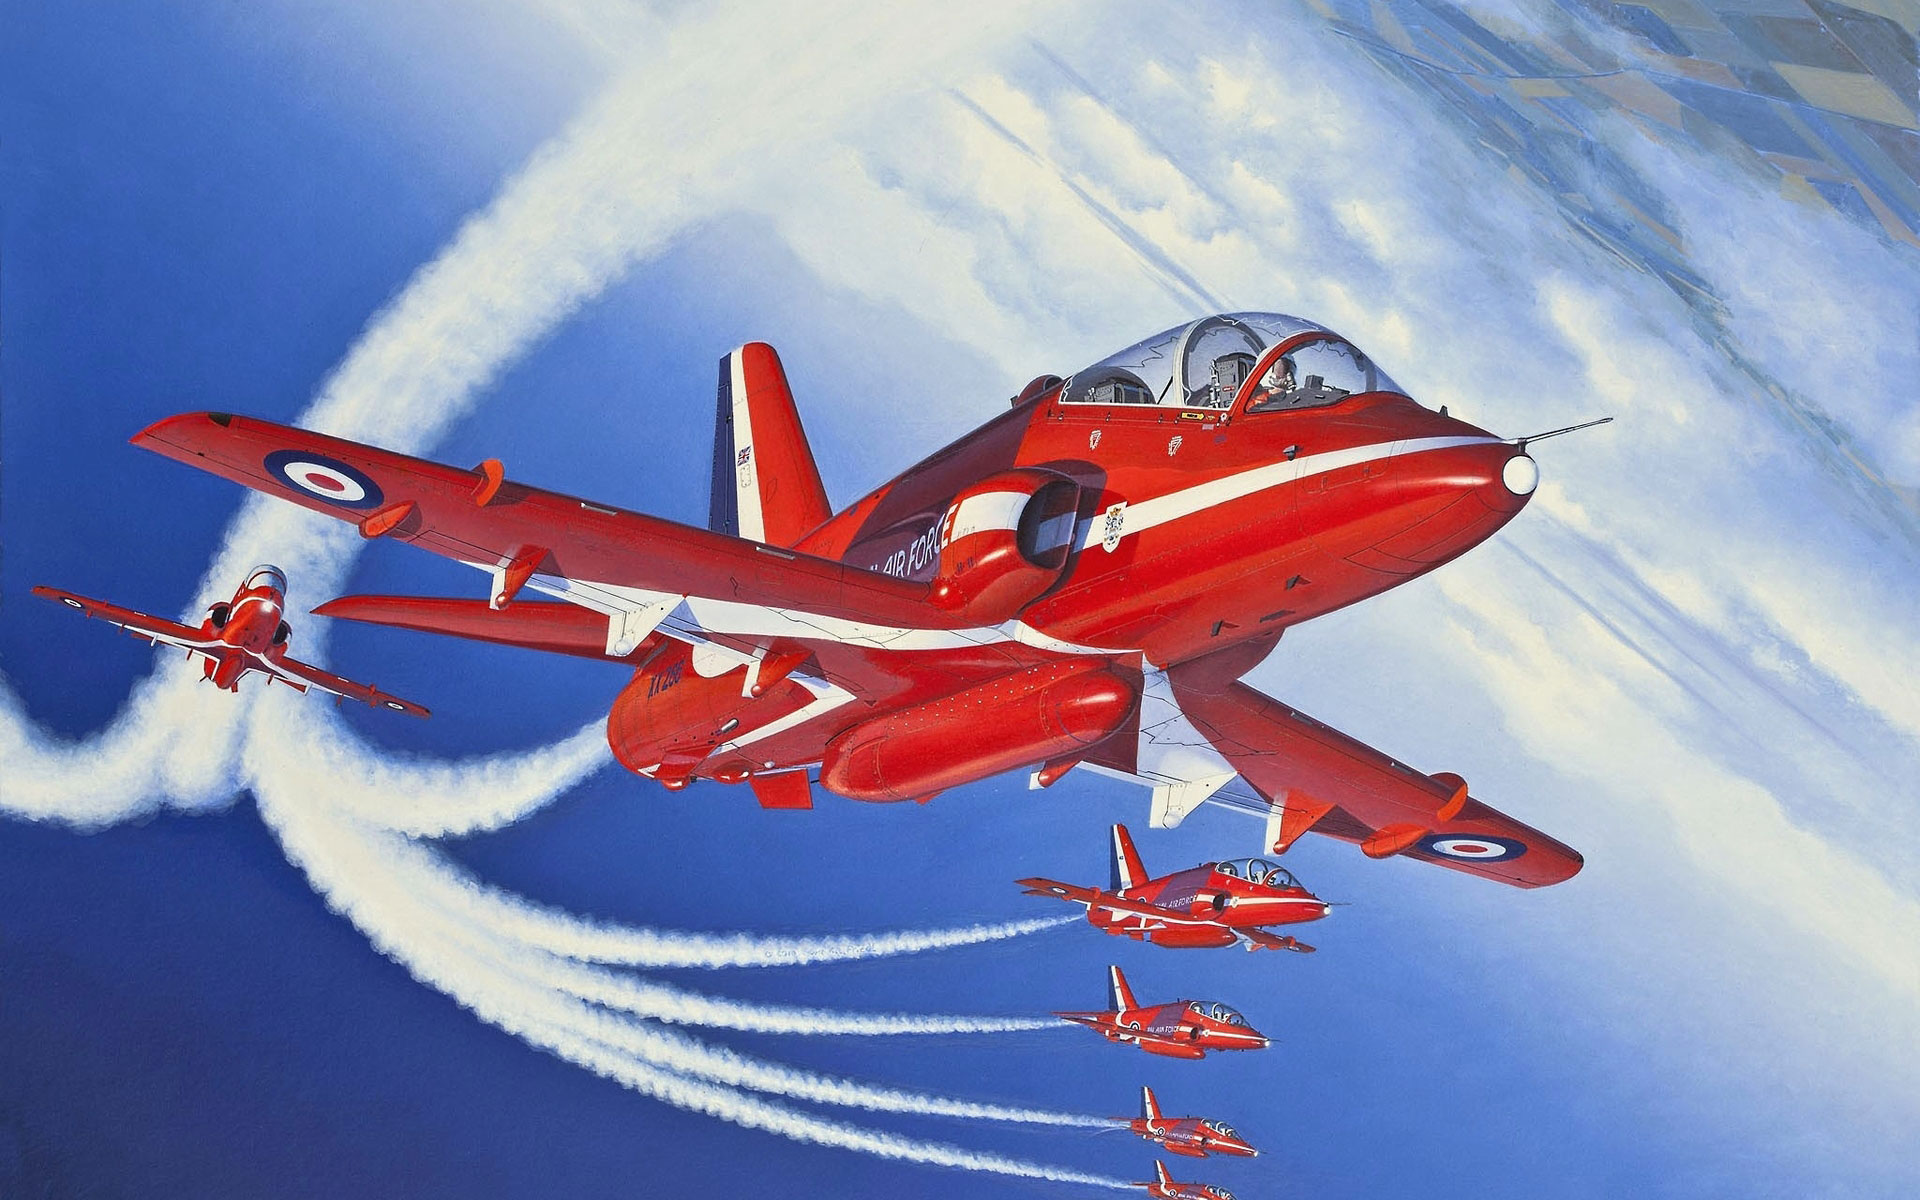 red stunt airplanes 1920x1200 wallpaper jpg 263184 - clip art library